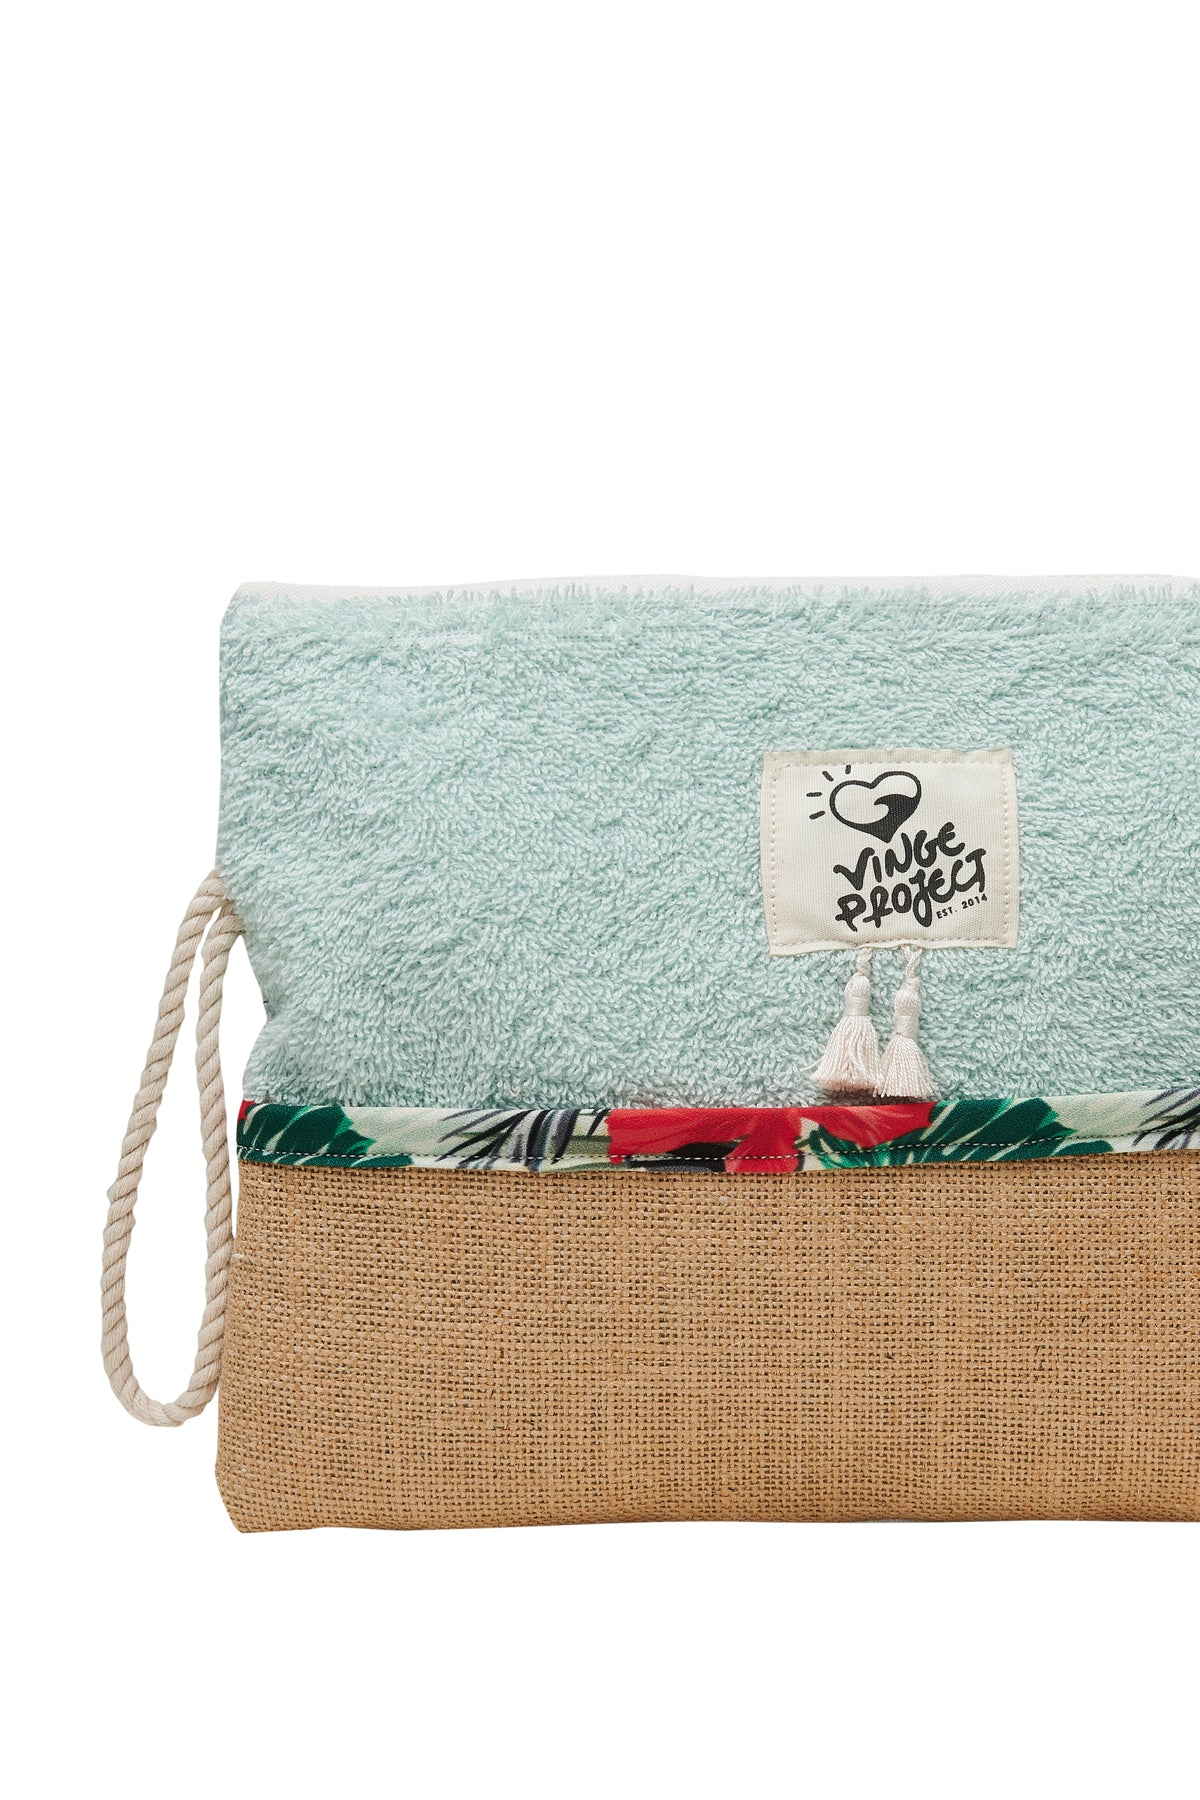 Pistachio 𝐌𝐞𝐝𝐢𝐮𝐦 Waterproof Clutch Bag ( 𝗟𝗔𝗦𝗧 𝗜𝗧𝗘𝗠𝗦 )